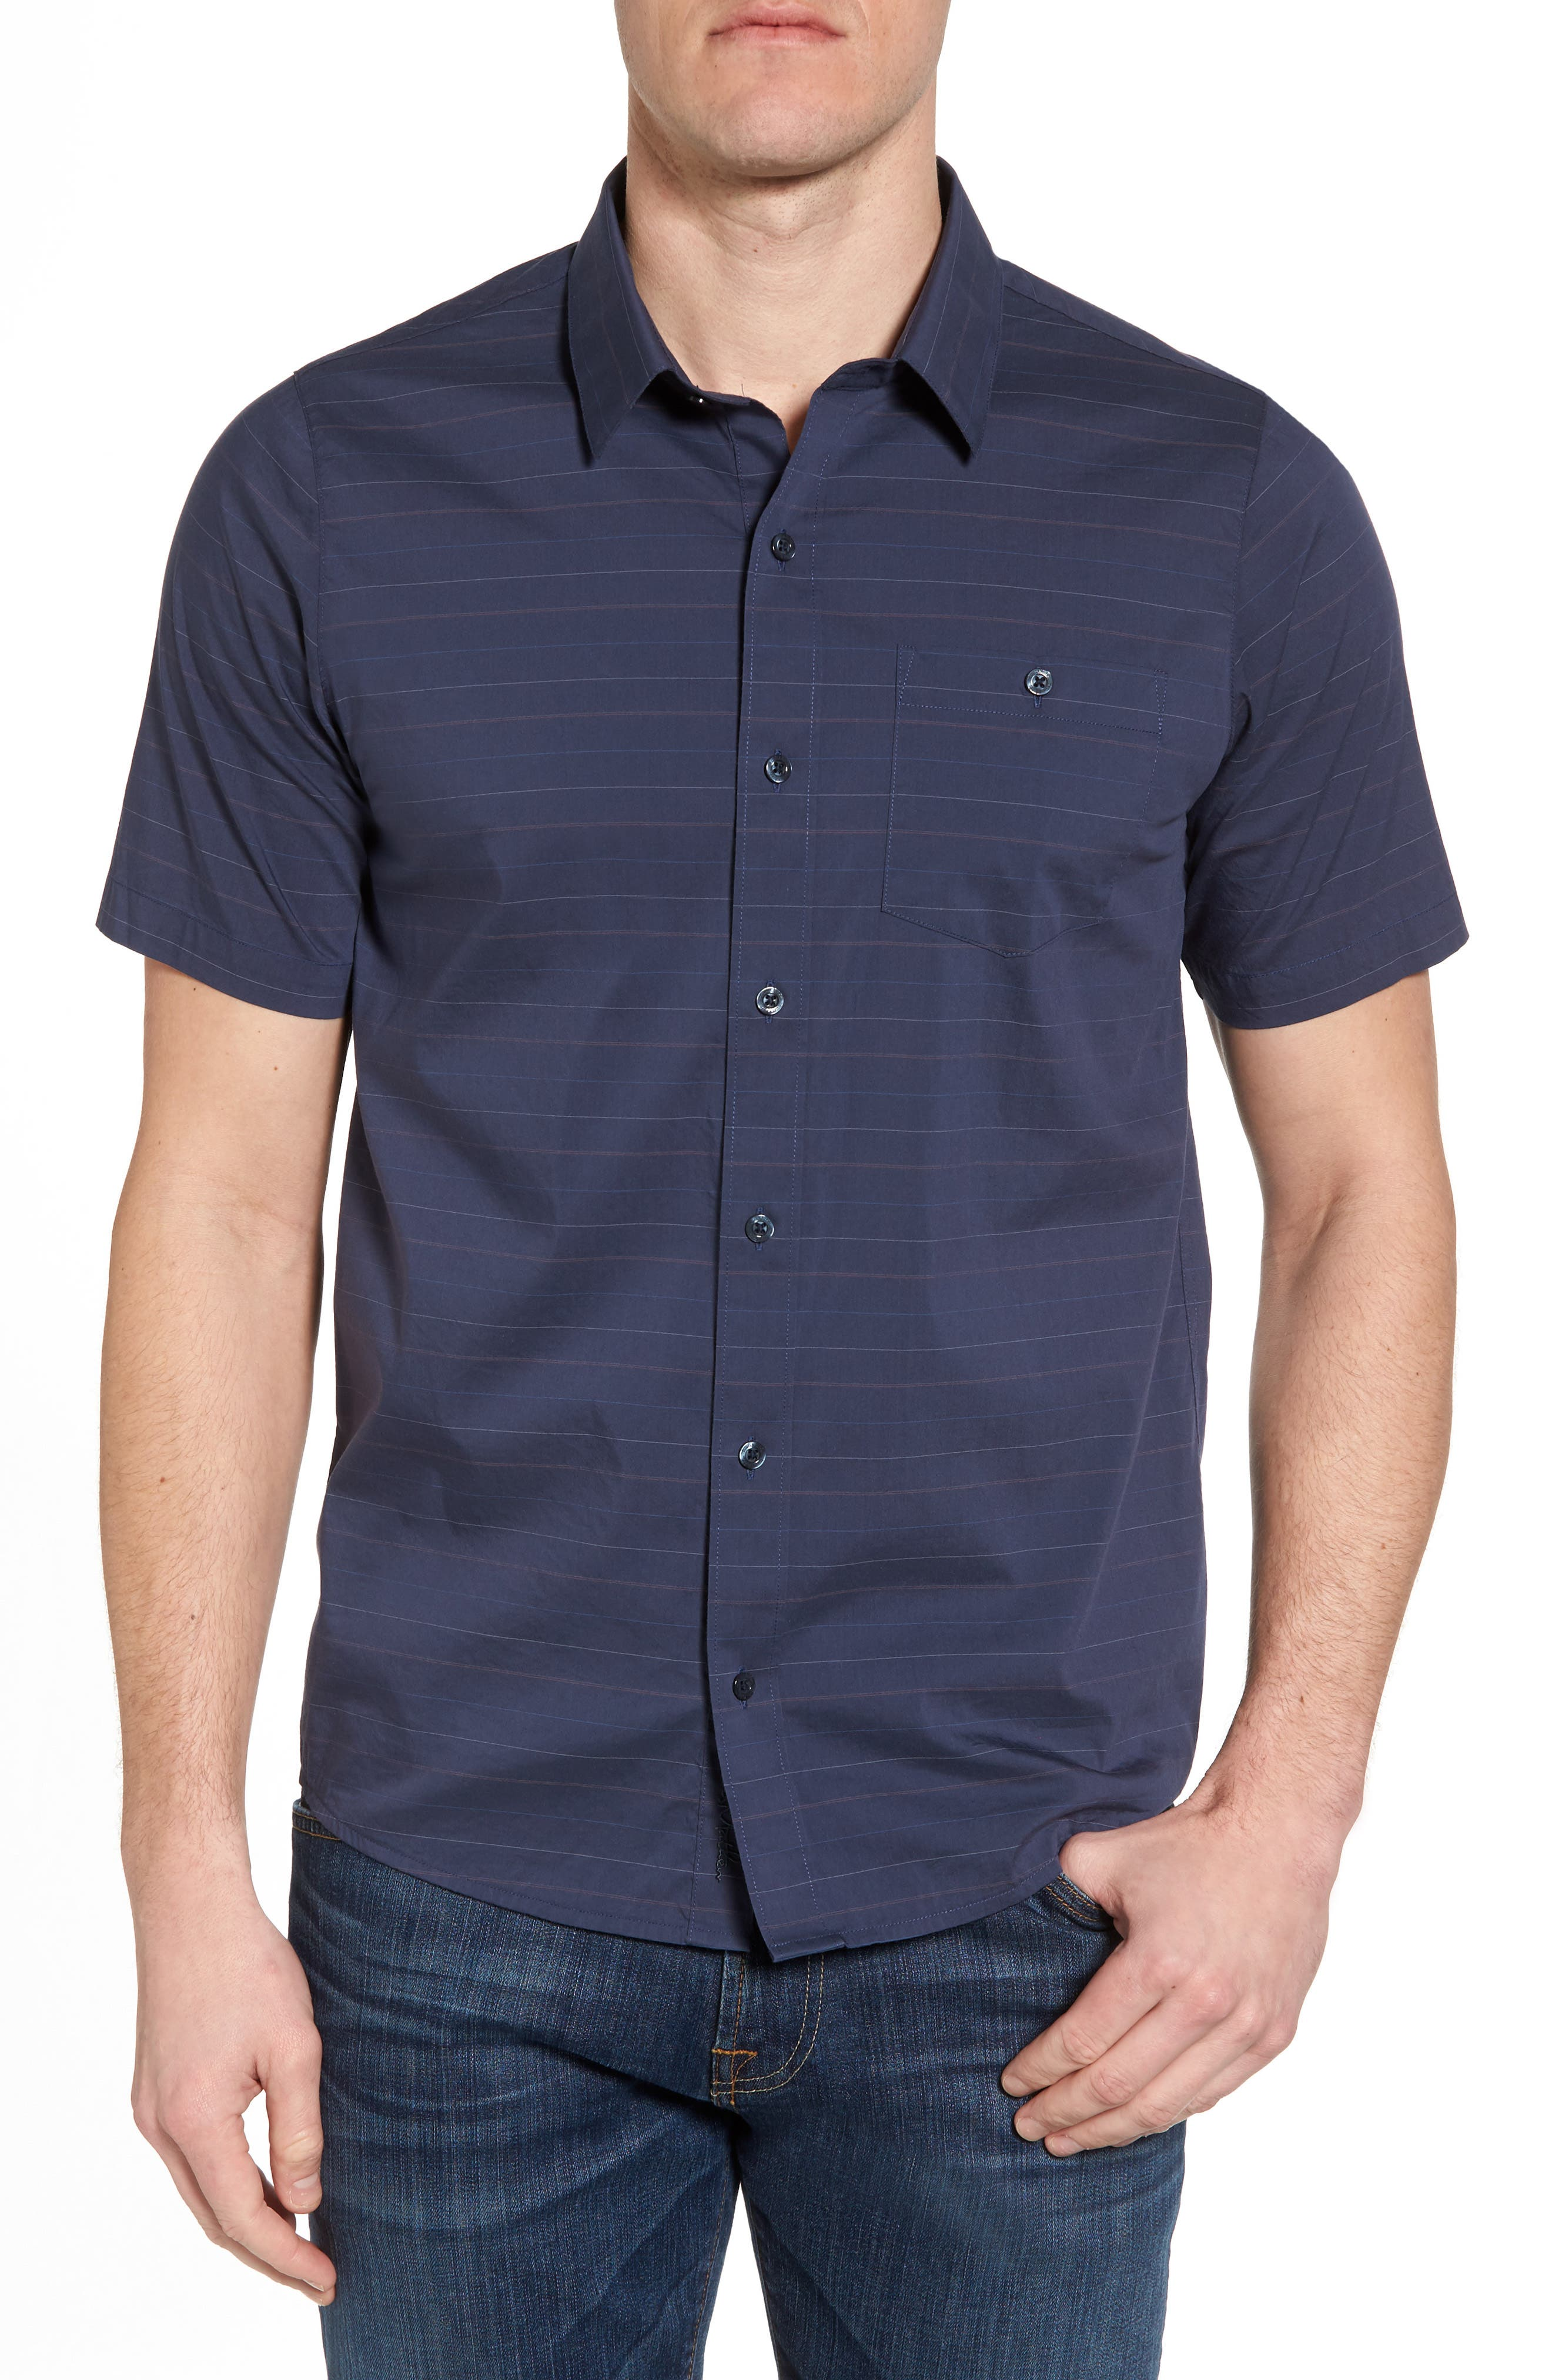 Alternate Image 1 Selected - Travis Mathew Linear Slim Fit Sport Shirt